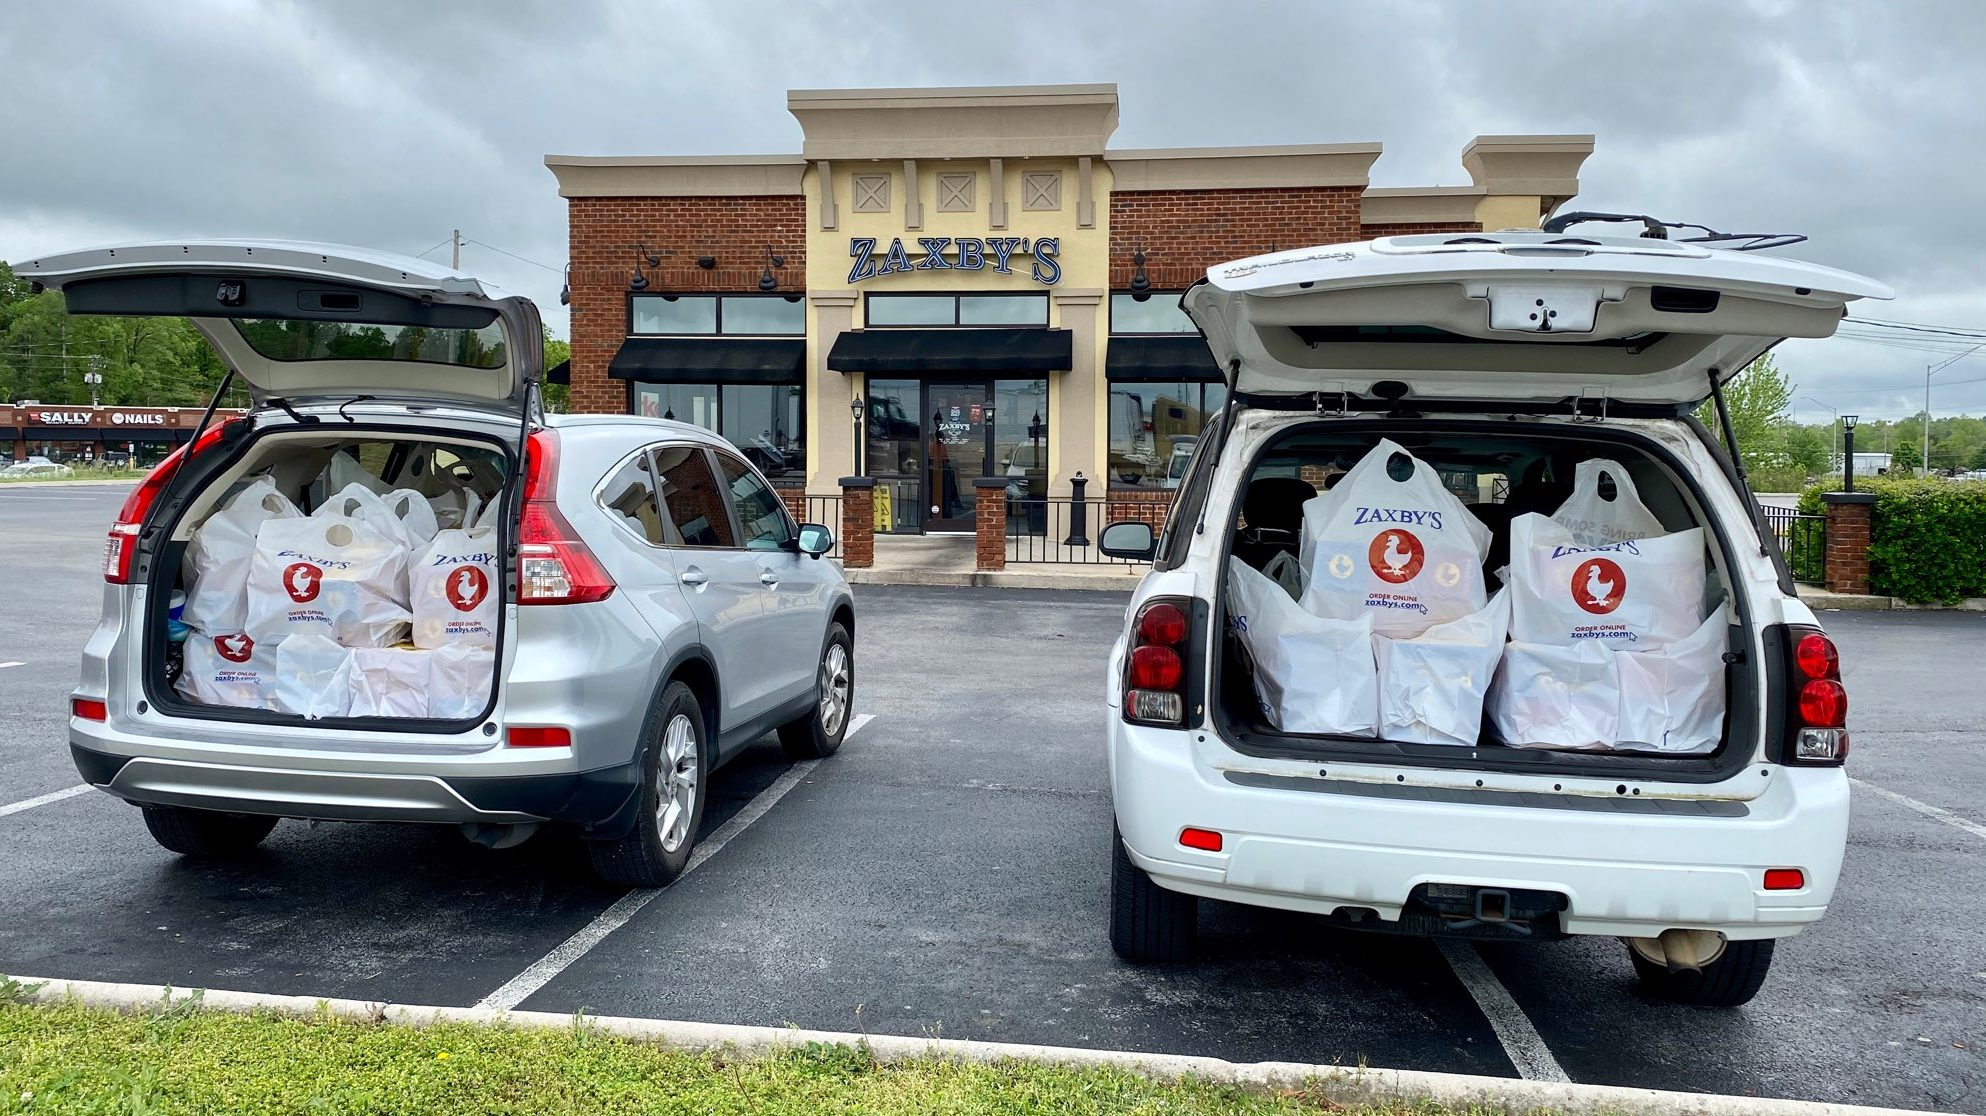 Thank you, Zaxby's of Crossville, for thoughtfully donating 200 hundred lunches in support of the heroes at Cumberland Medical Center.